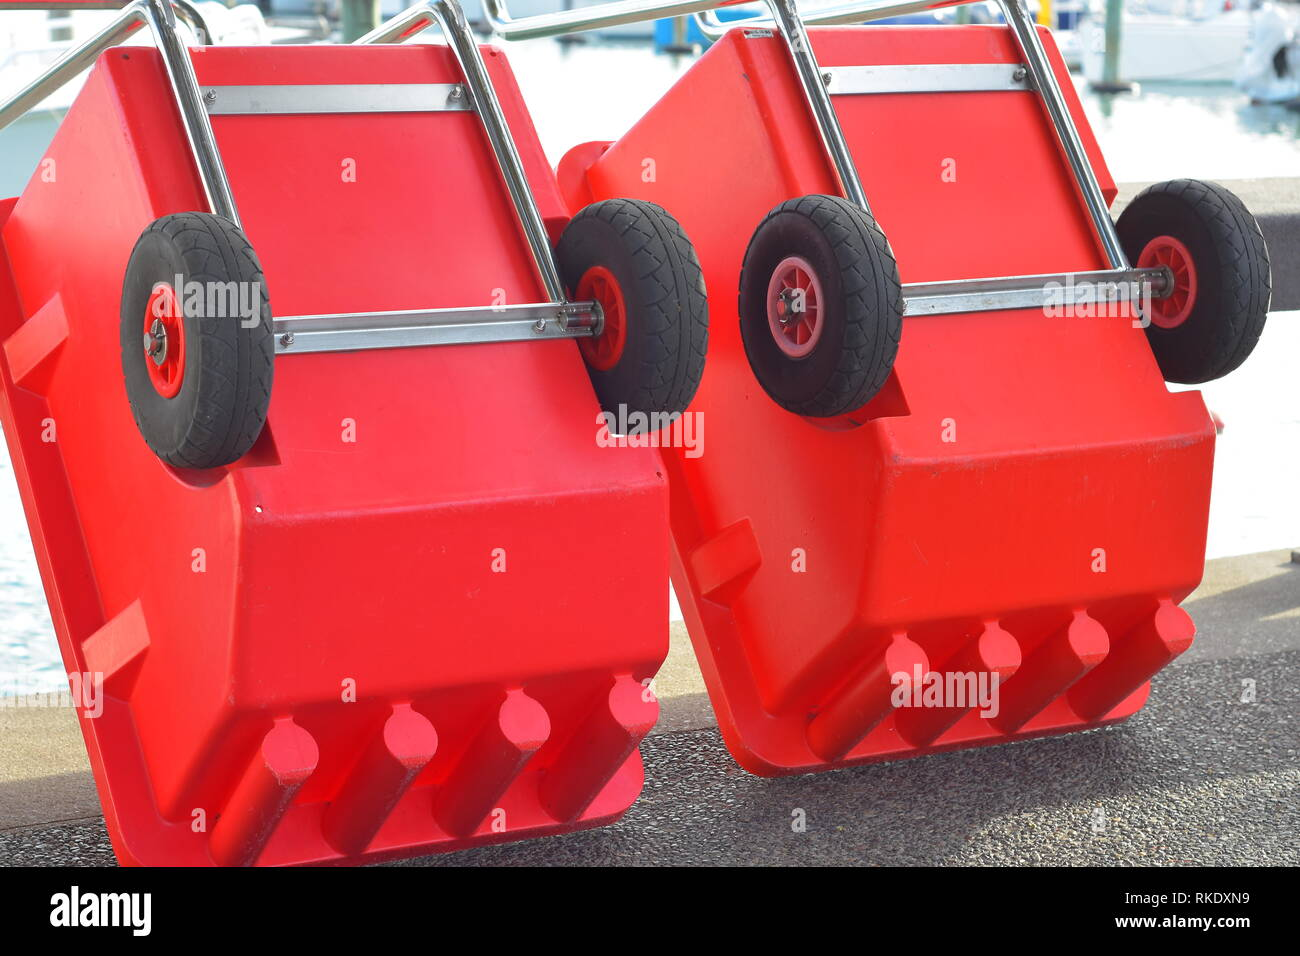 Red plastic box shaped industrial trolleys with one axle and galvanized metal frame and handle. - Stock Image